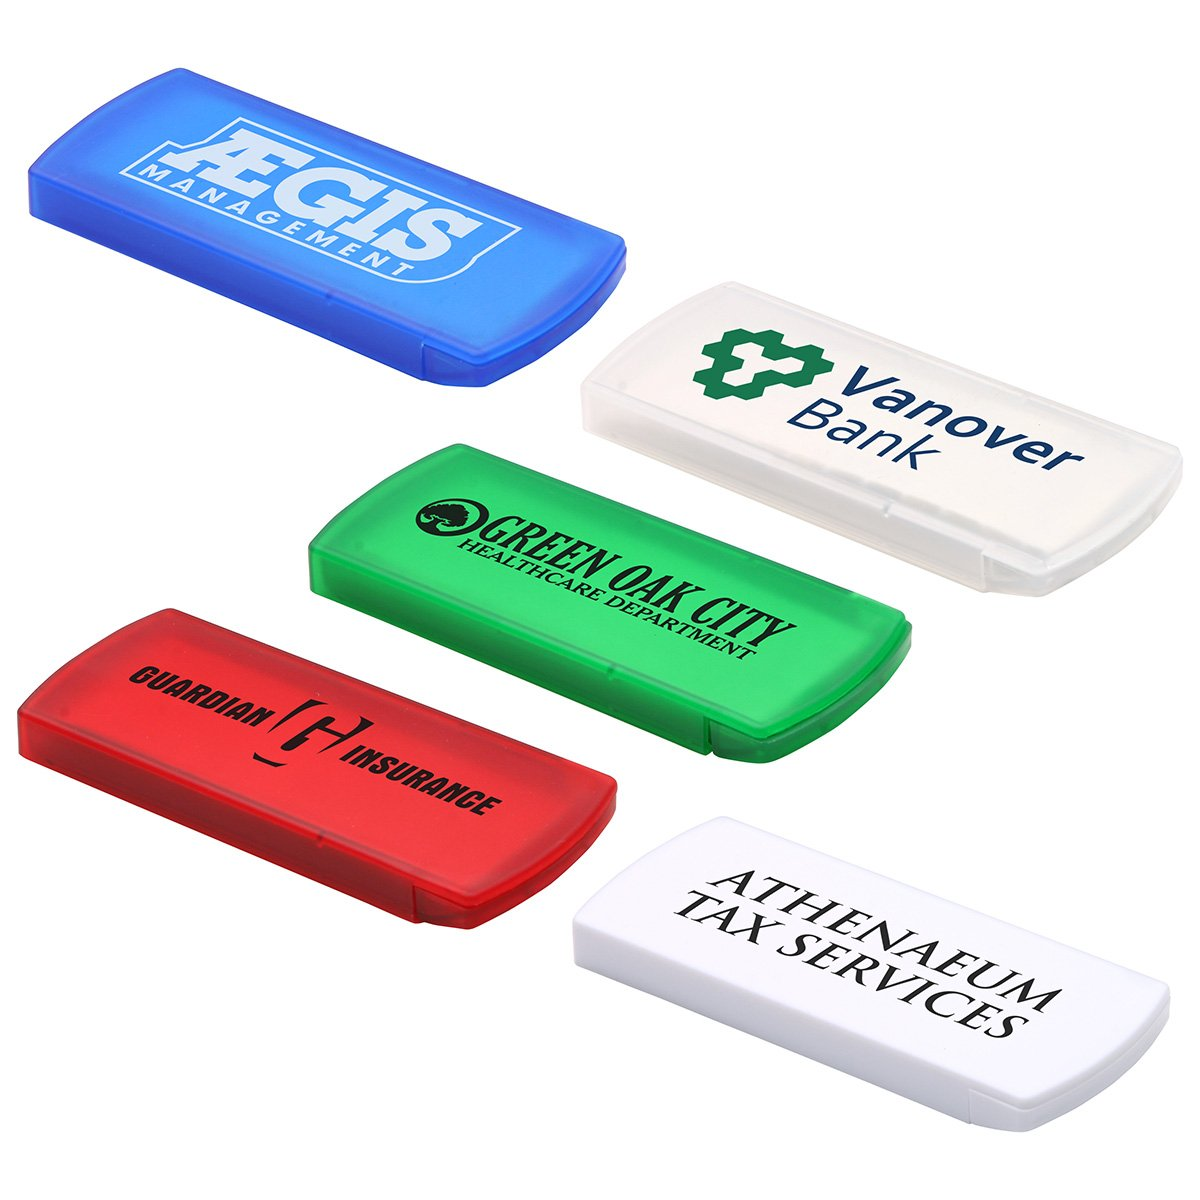 250 Custom Slide-Right Bandage Dispenser Printed with Your Logo or Message